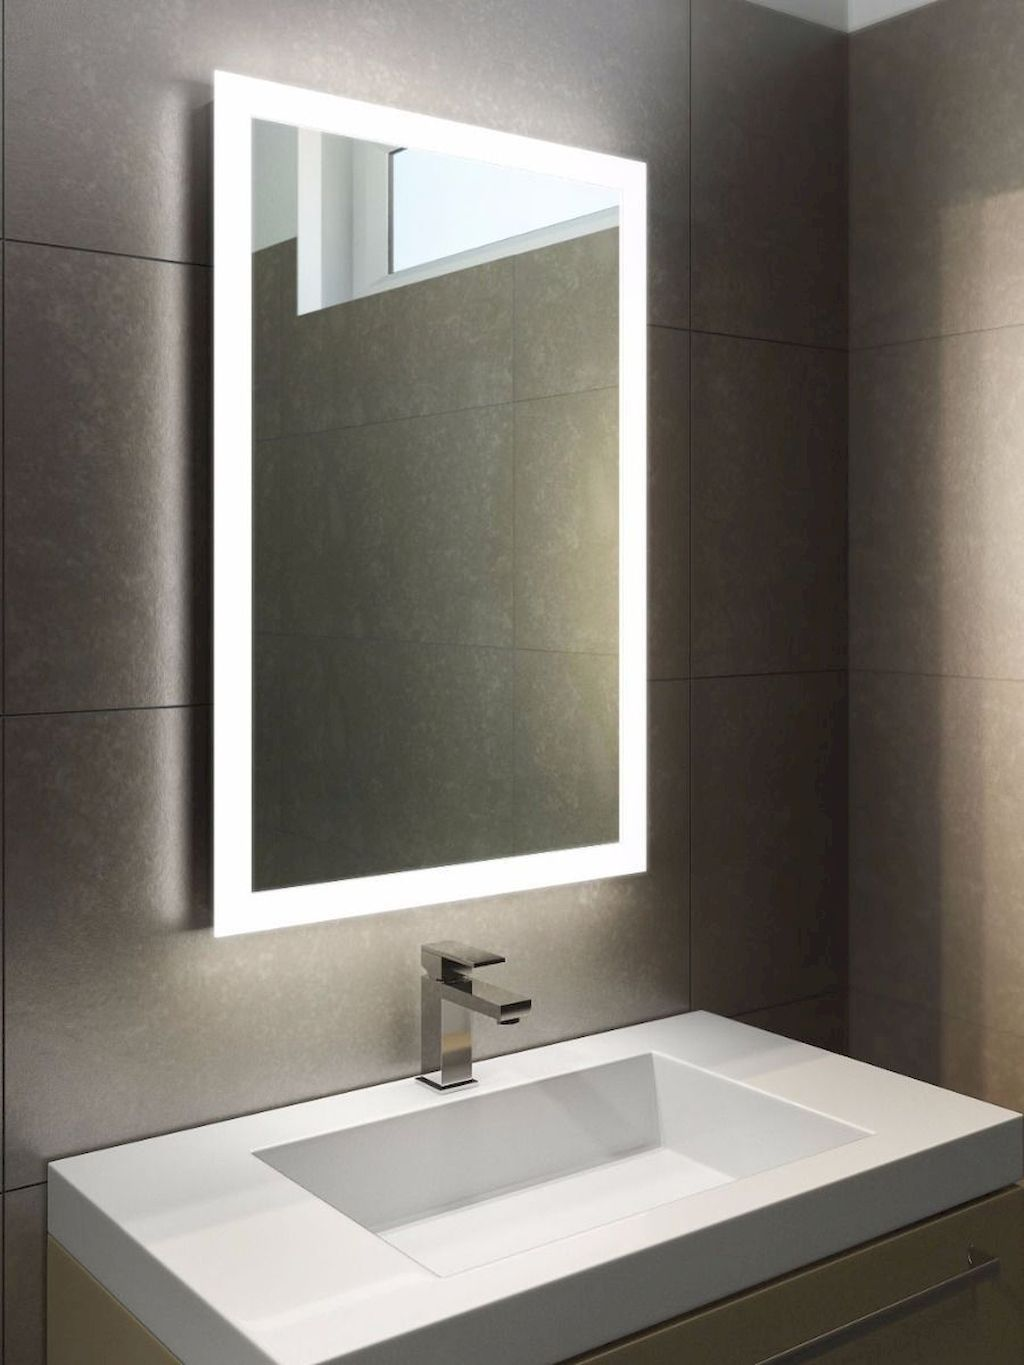 Make Use Of Your Bathroom Led Lighting In 2020 Light Up Bathroom Mirror Led Mirror Bathroom Bathroom Mirror Lights